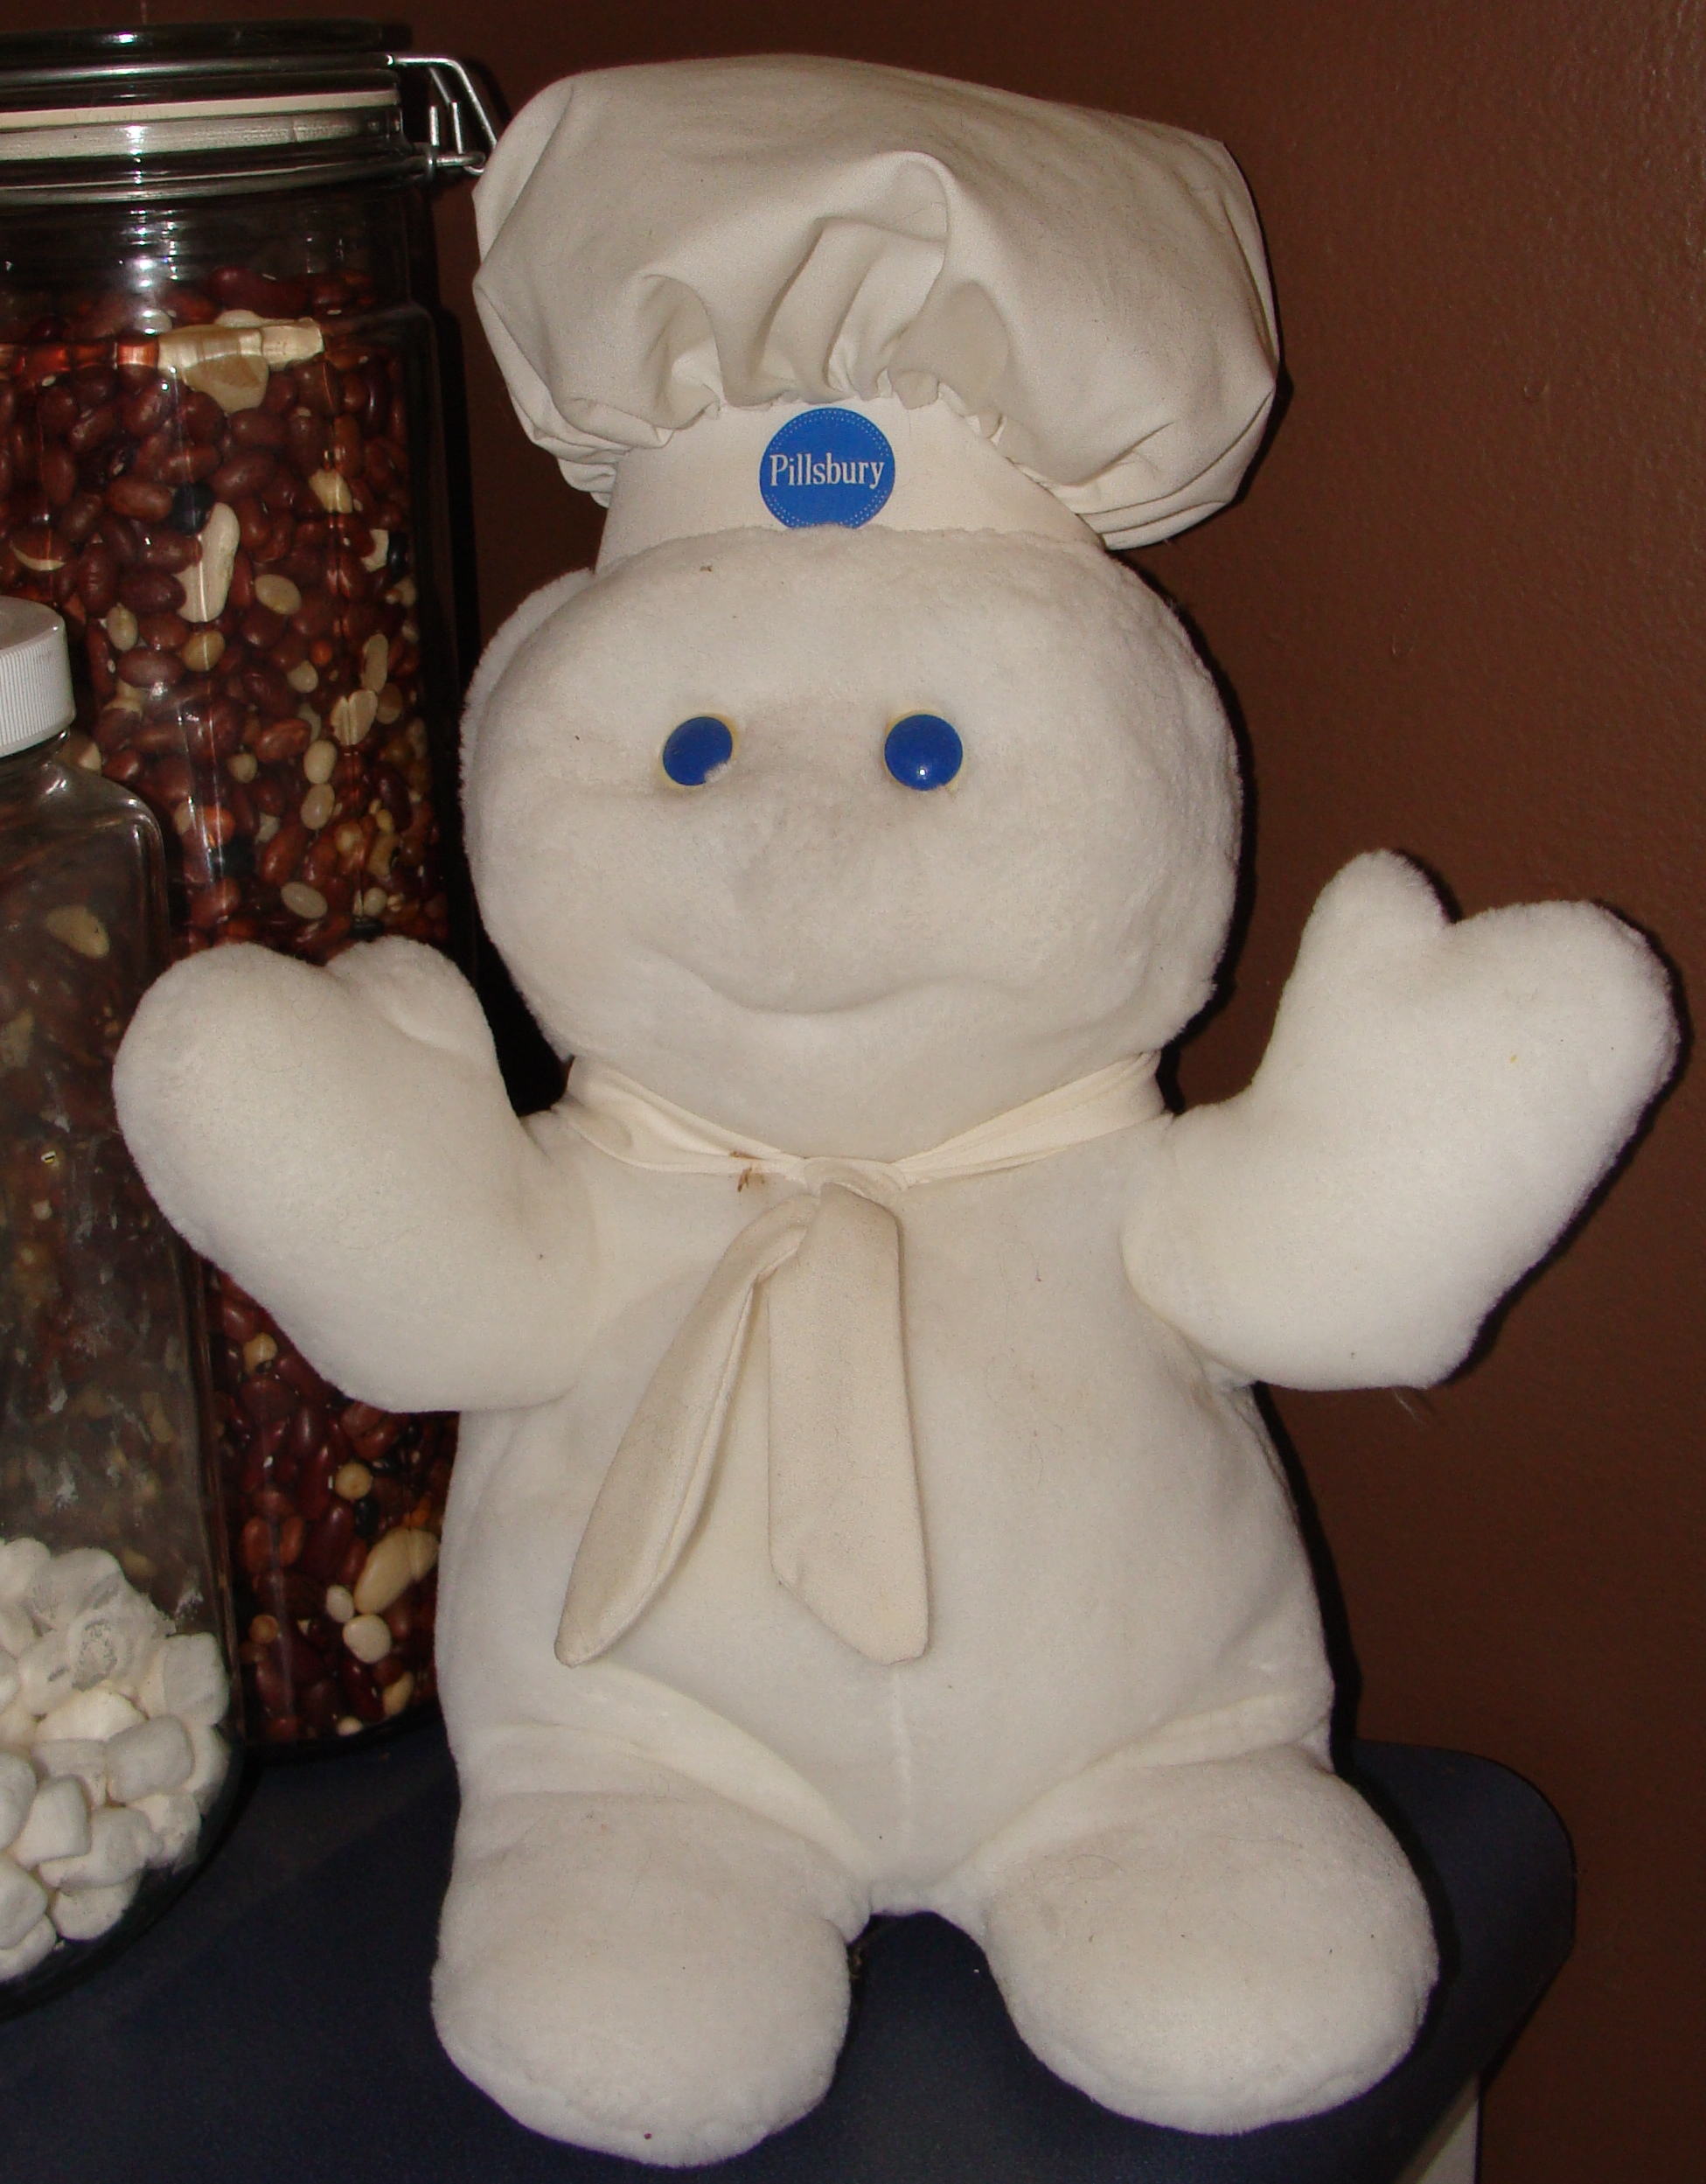 Pillsbury Doughboy